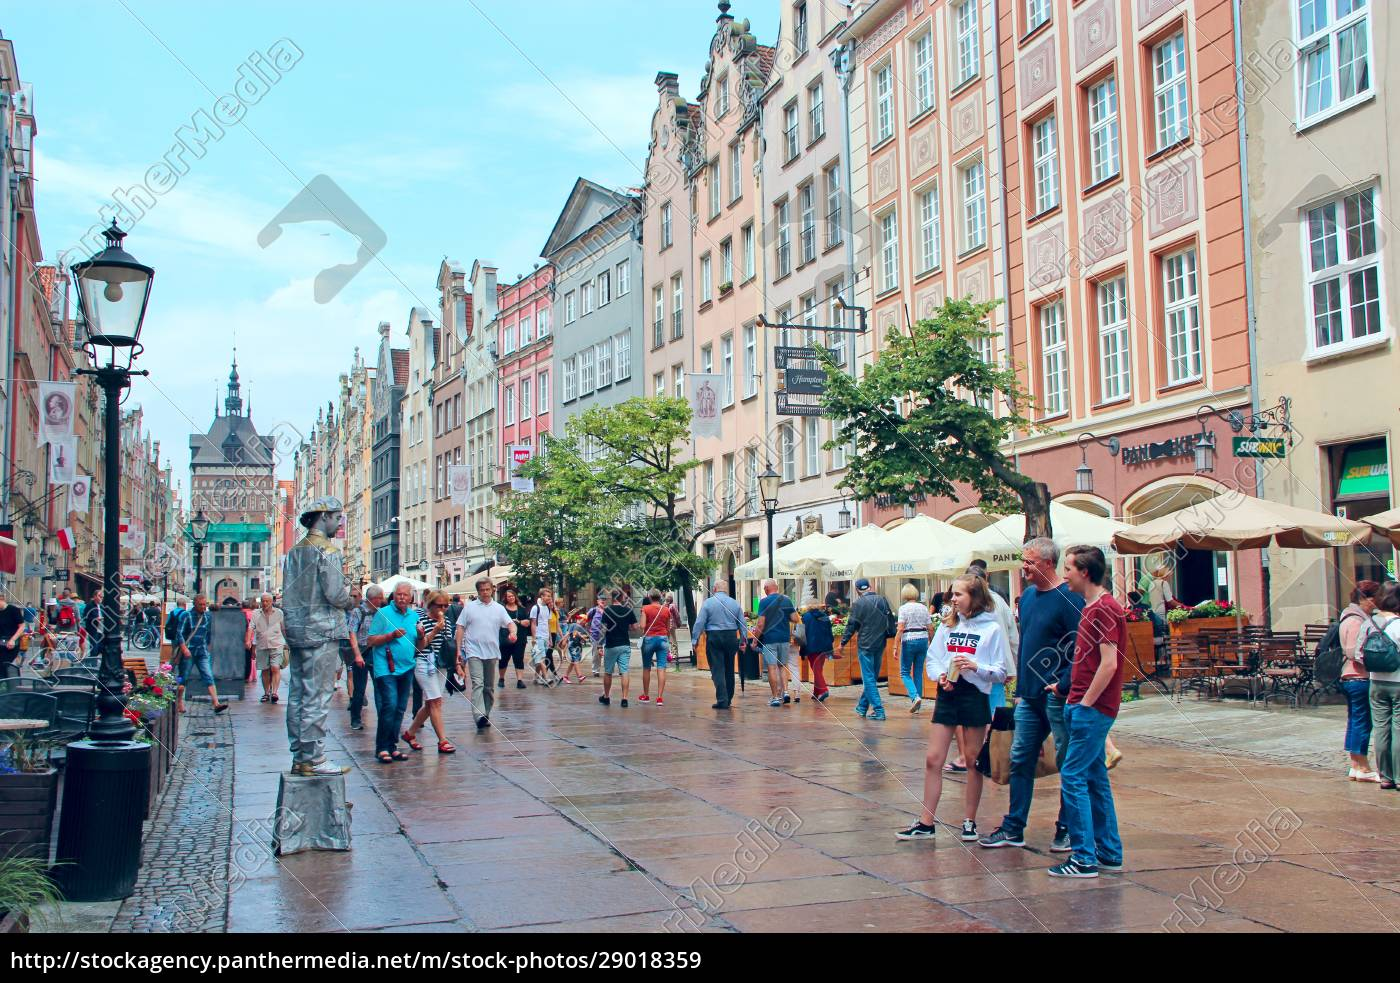 tourists, stroll, and, take, pictures, of - 29018359